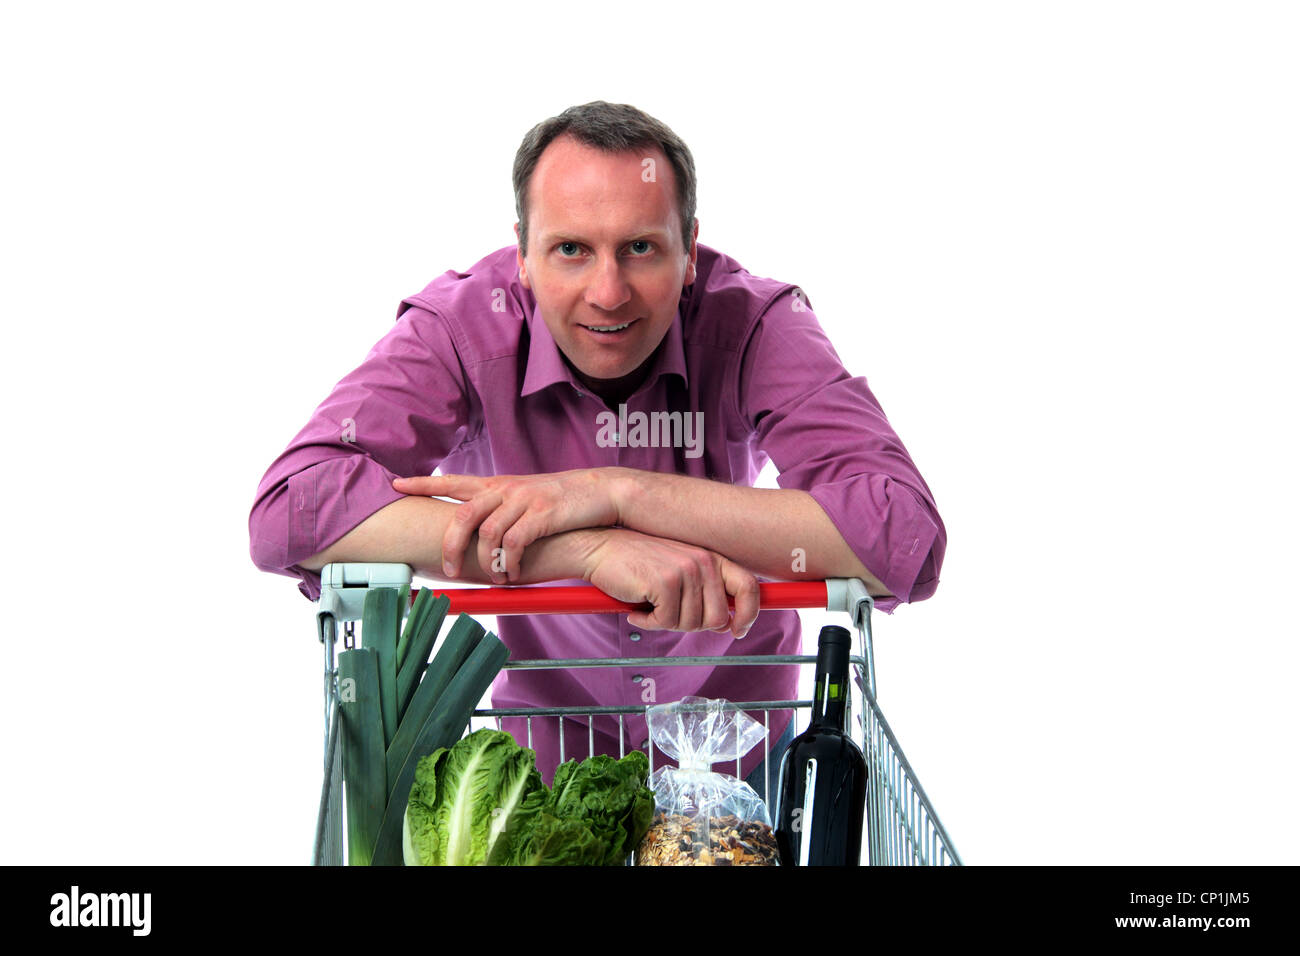 Man leaning on shopping cart Stock Photo: 47979797 - Alamy